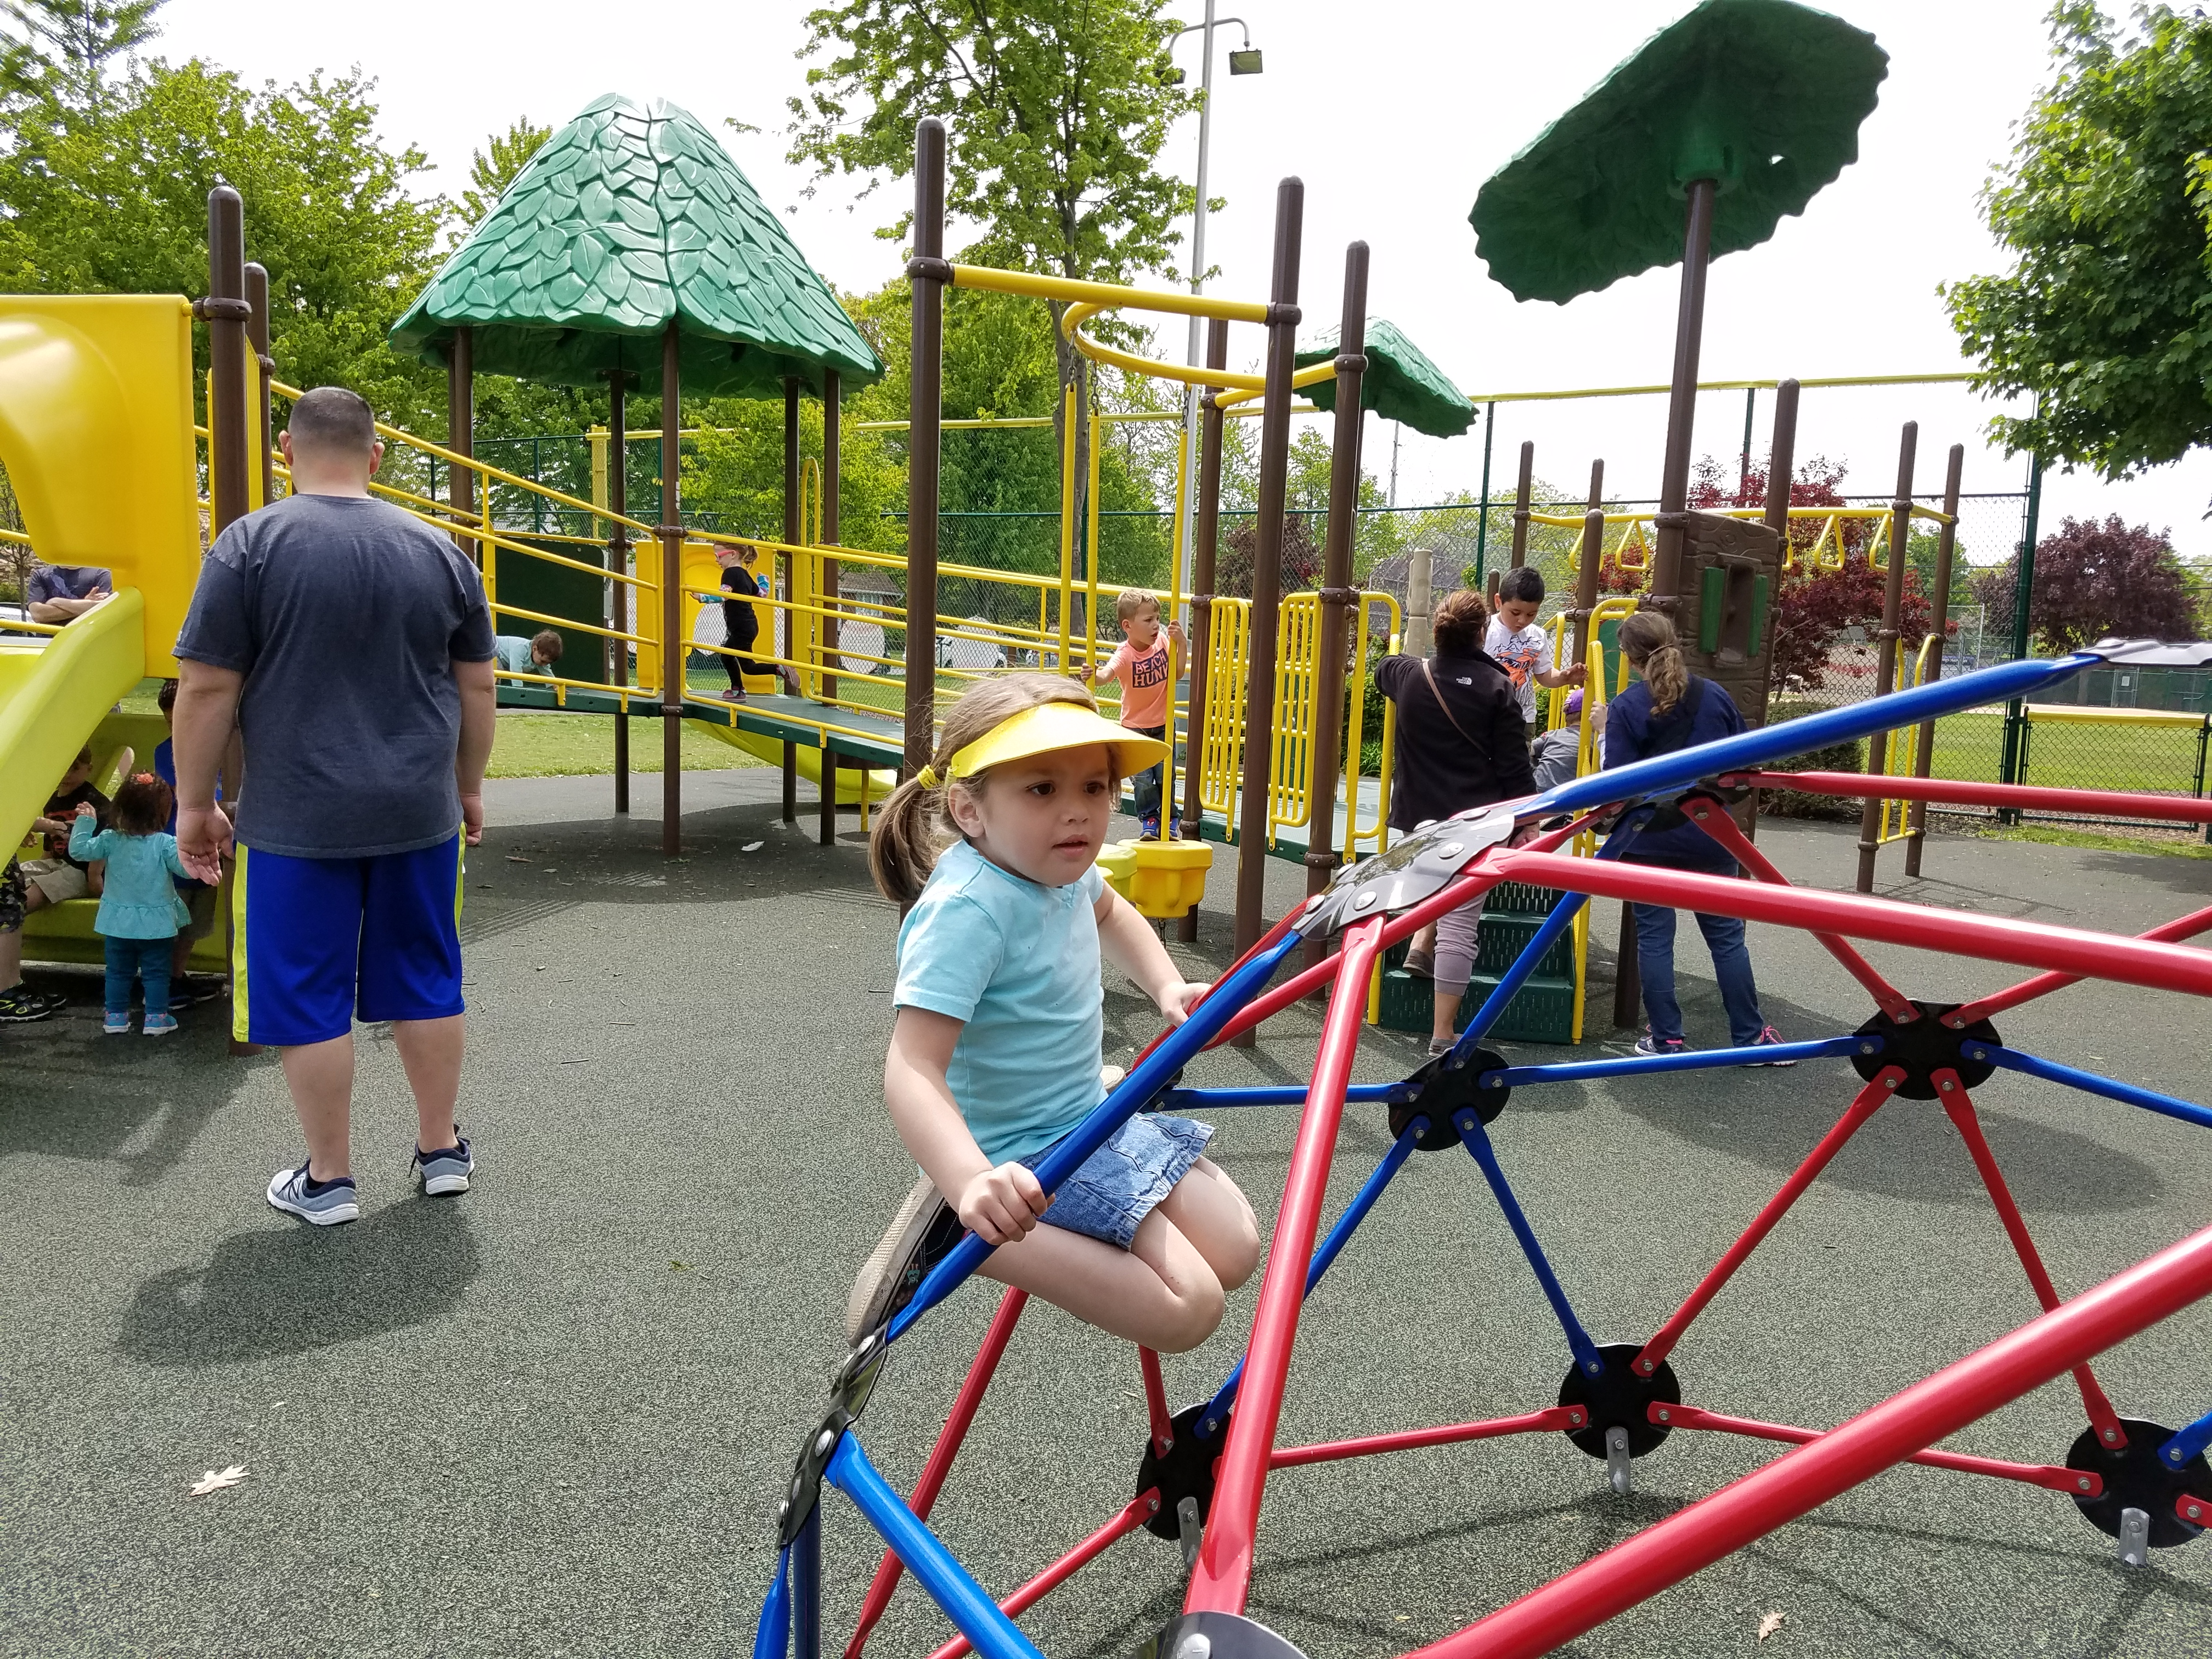 Town of Oyster Bay Beaches, Playground, 🛴 & Parks Guide 🏞️